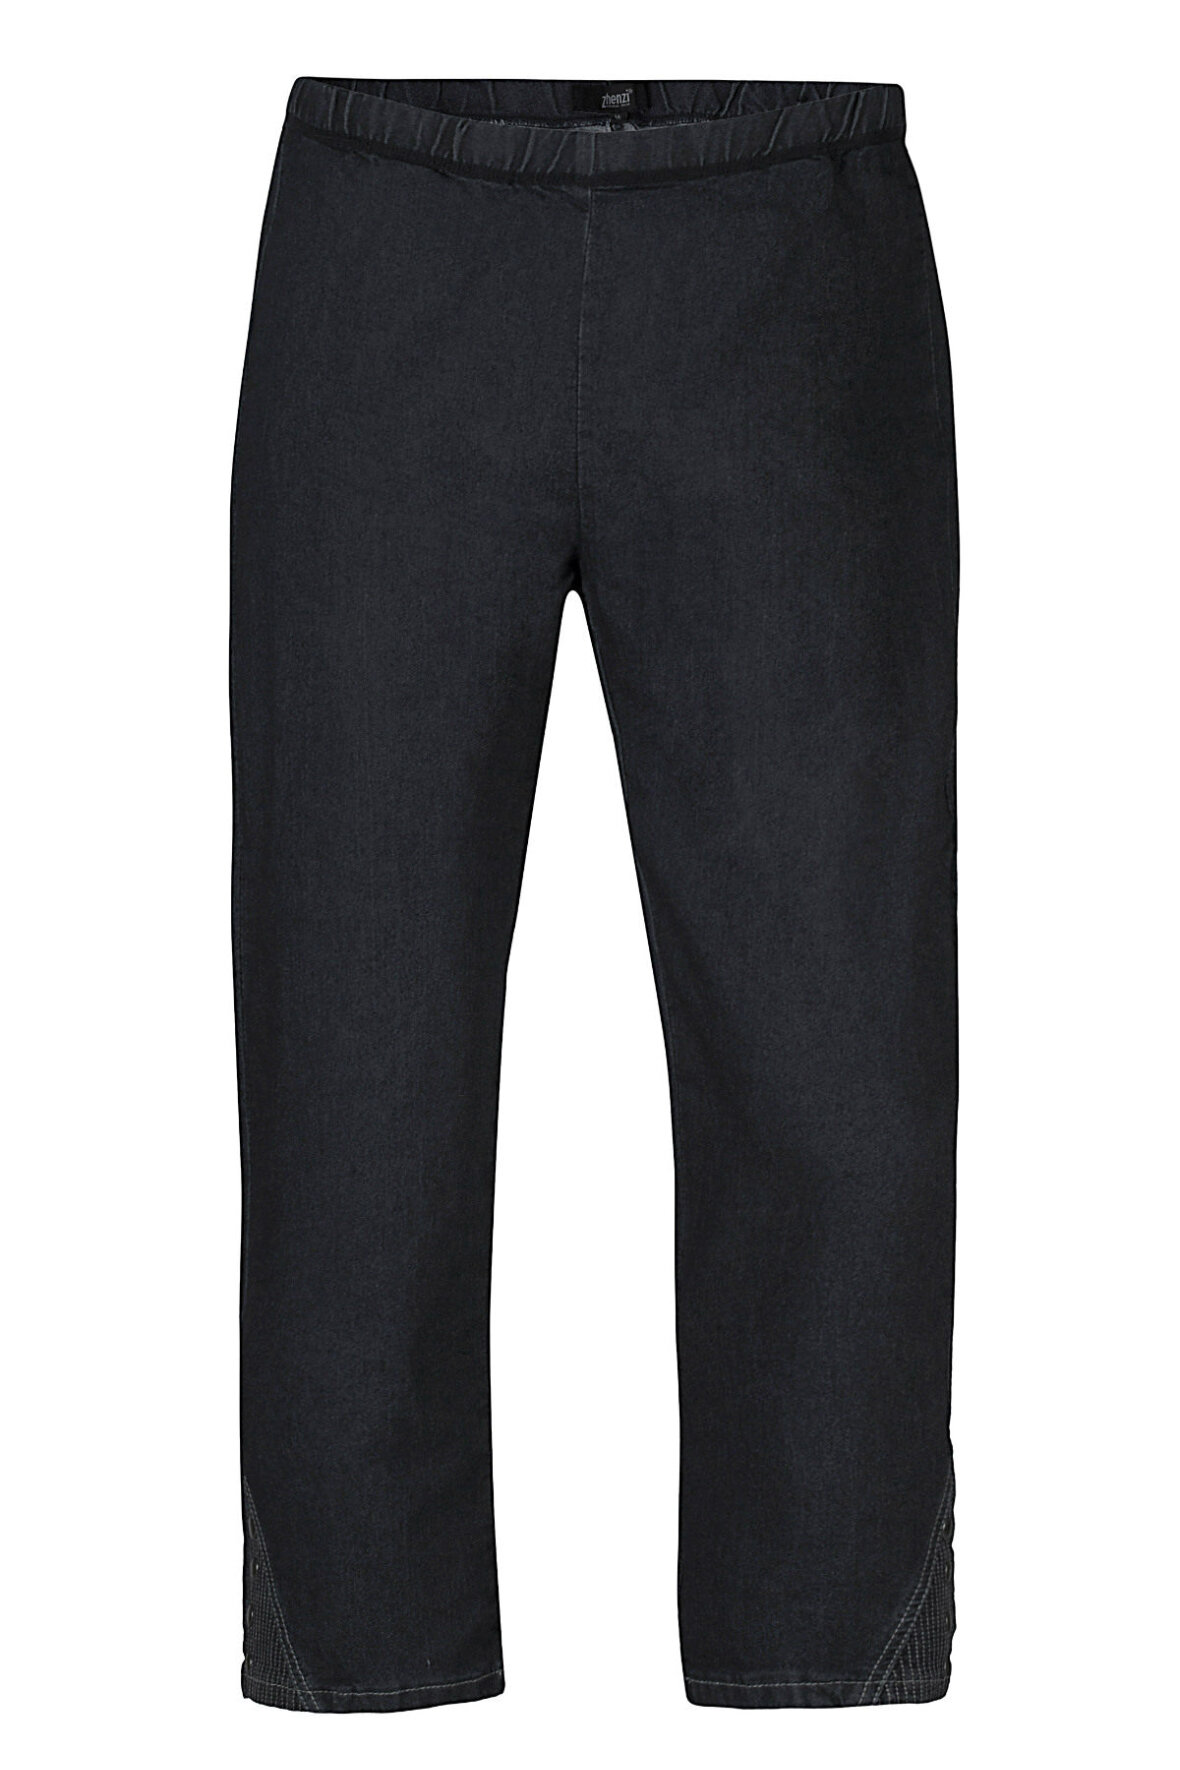 Zhenzi Jazzy Relaxed Fit jeans, 2001775 Hos Lohse